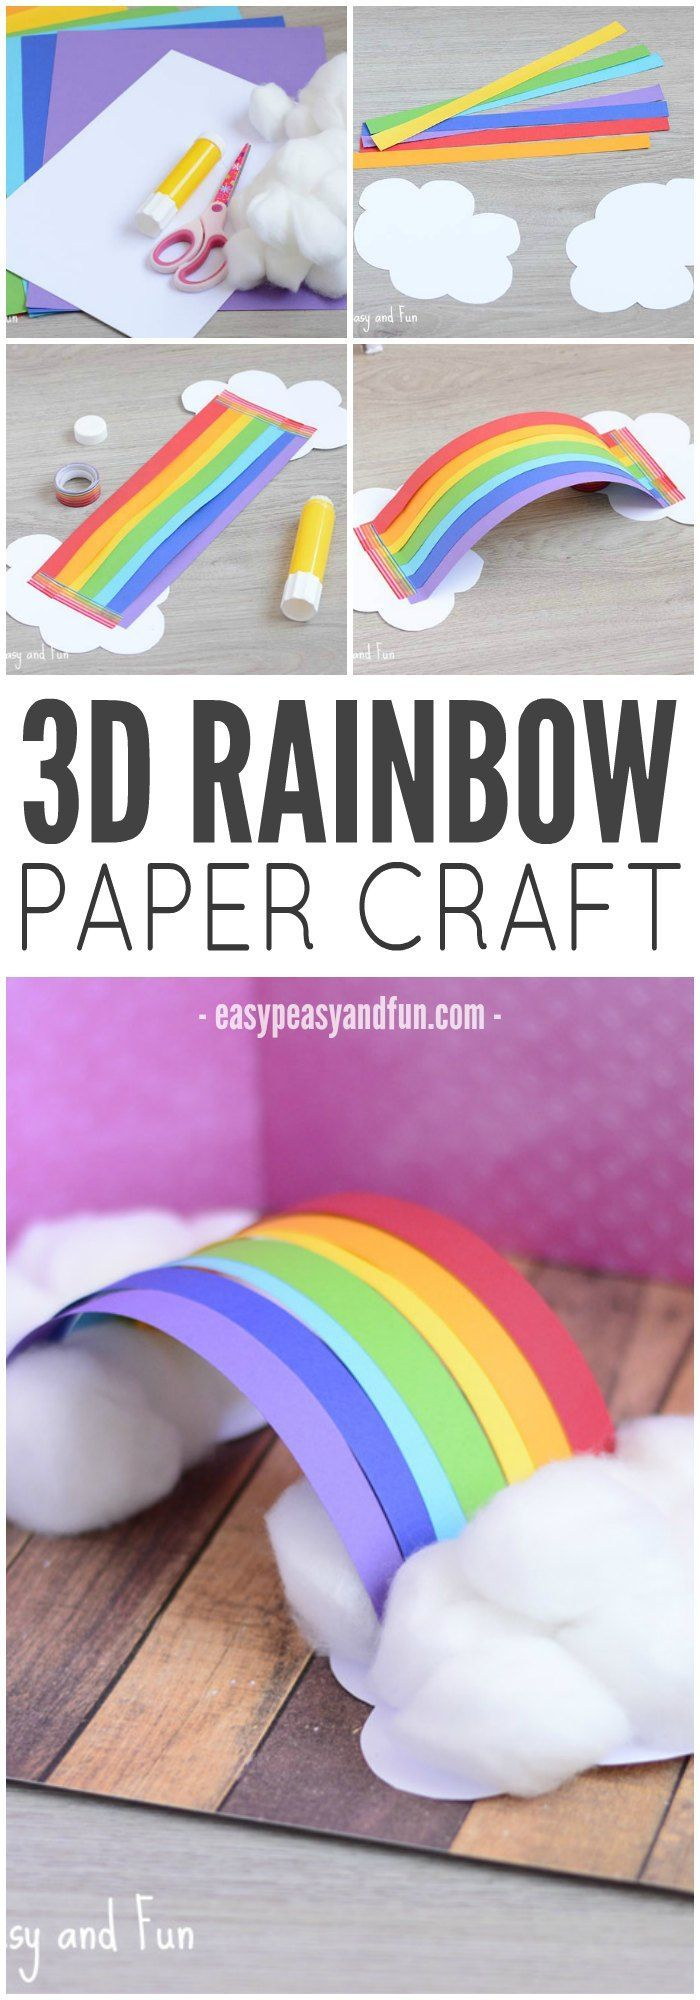 Simple 3D Rainbow Paper Craft